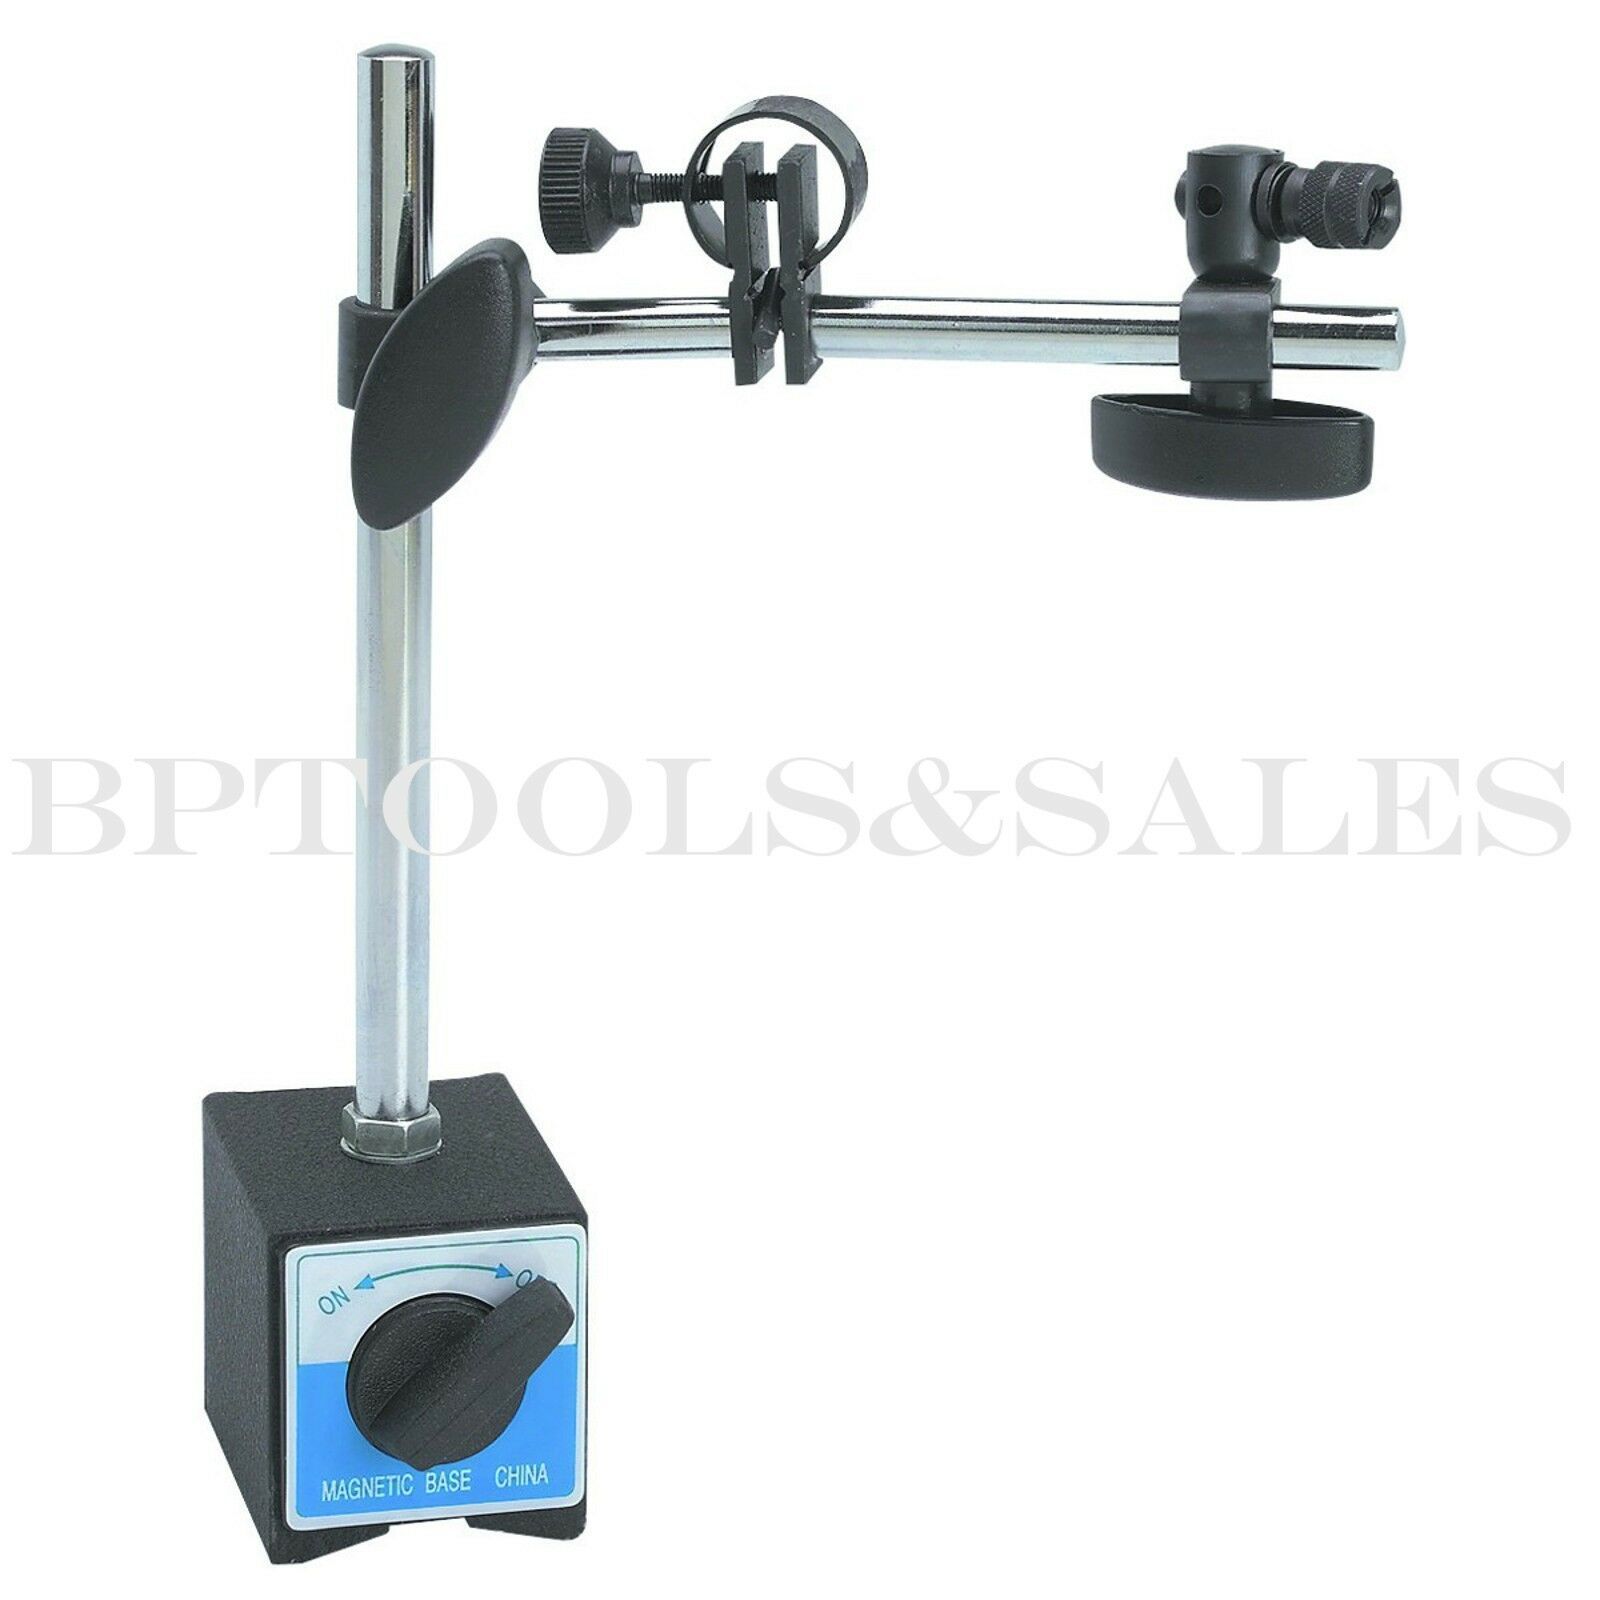 Magnetic Angle Indicator : Universal d deluxe magnetic base holder for dial test